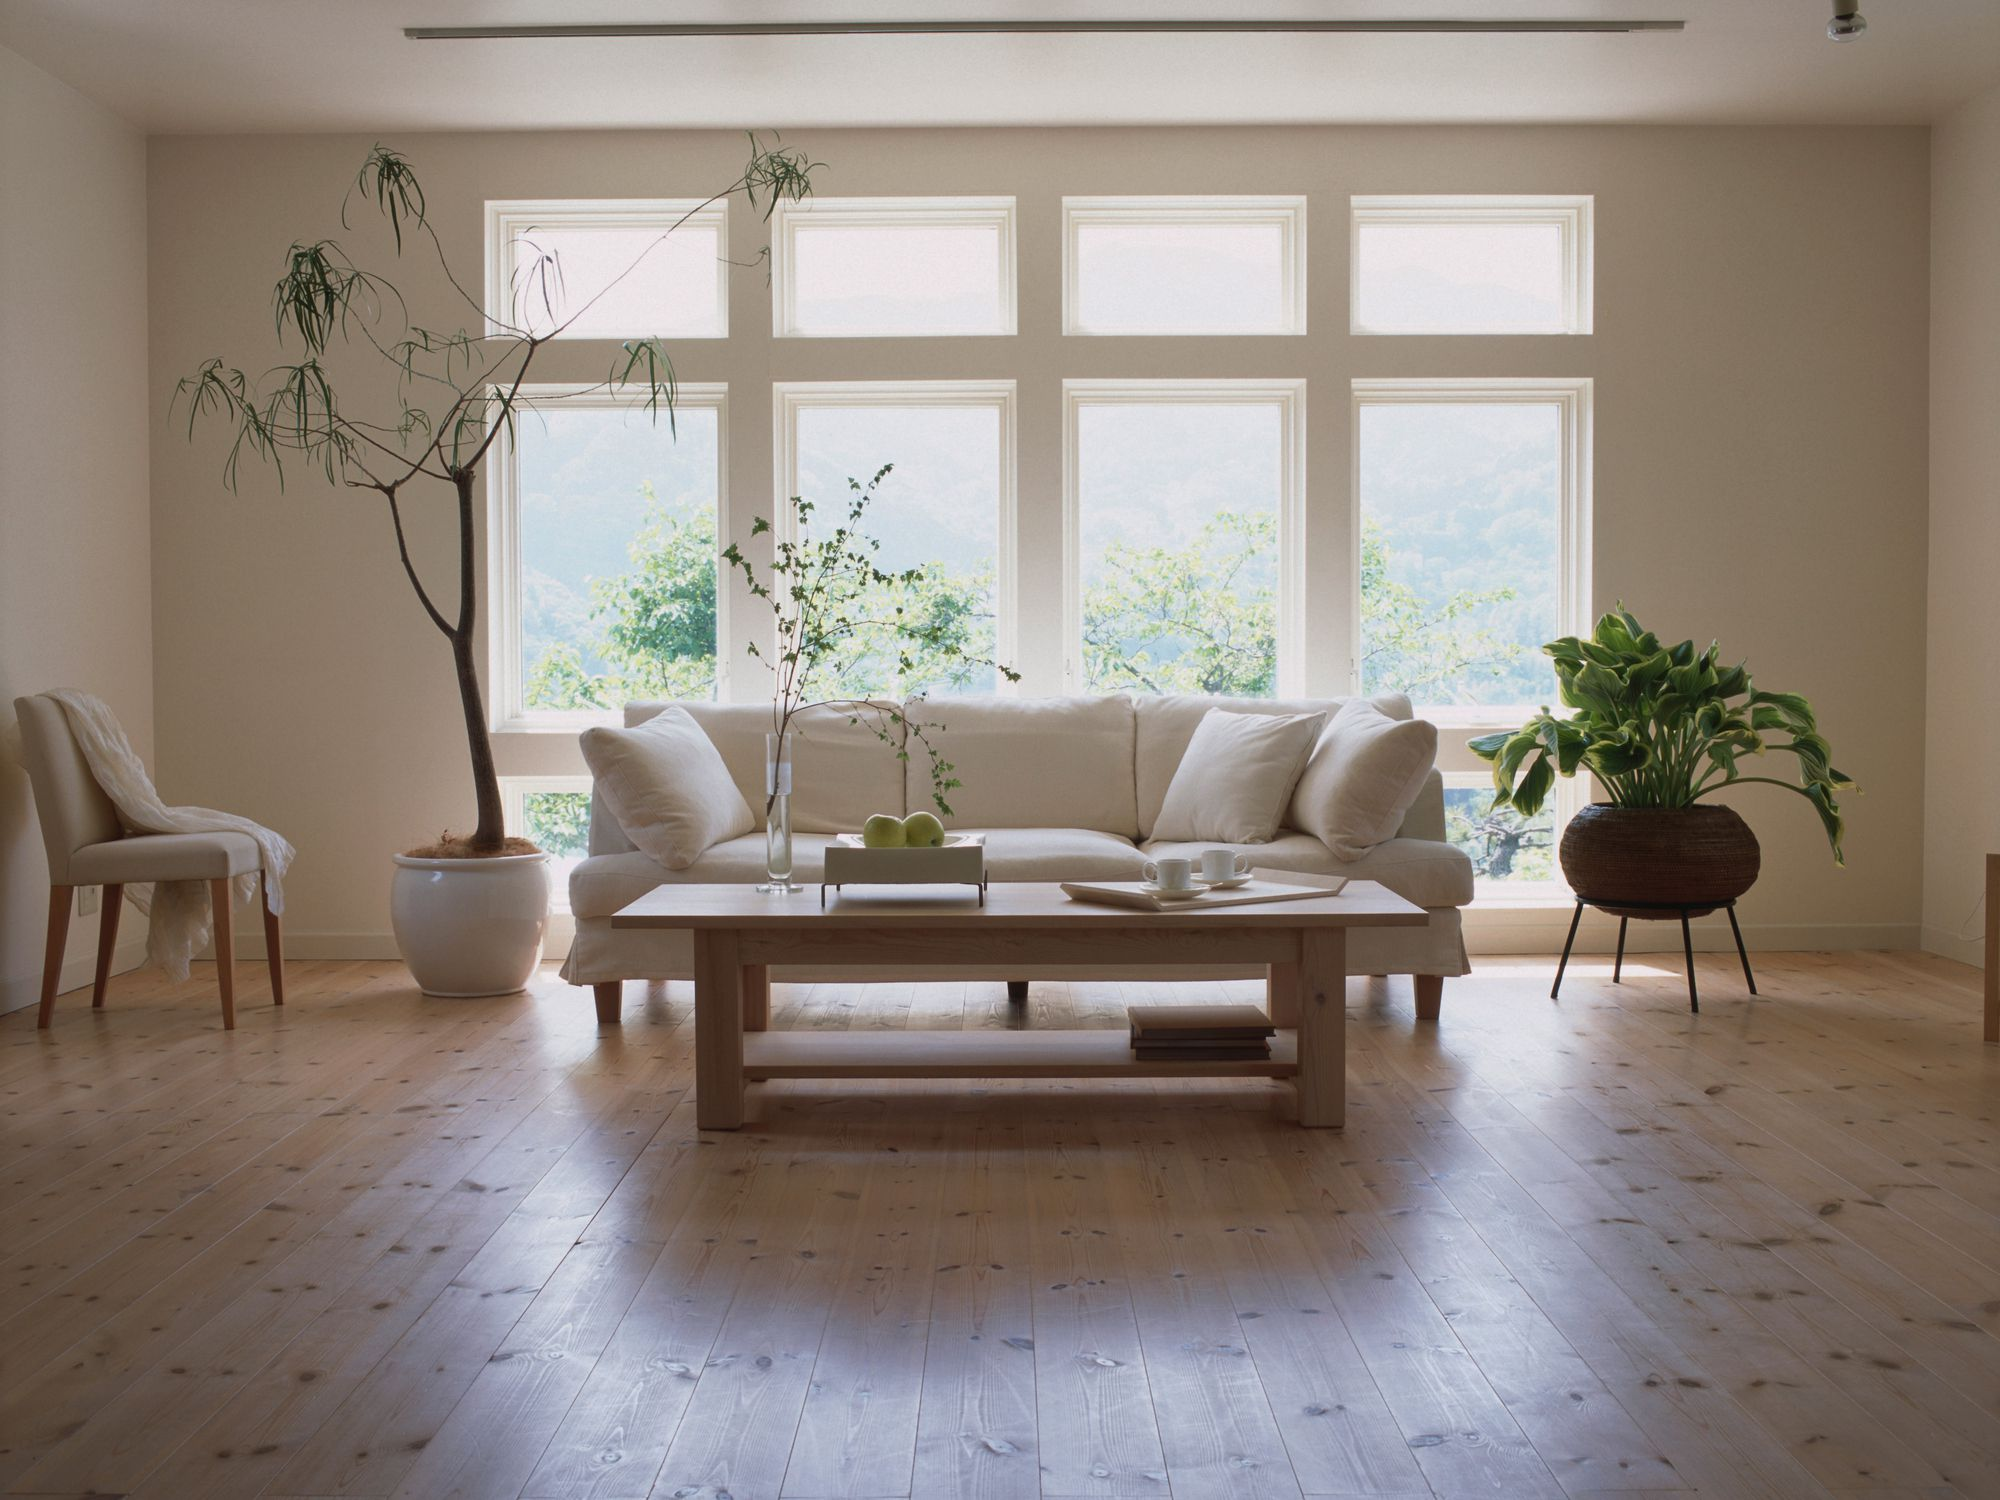 How durable is laminate flooring - We Weigh The Pros And Cons Of Laminate Flooring